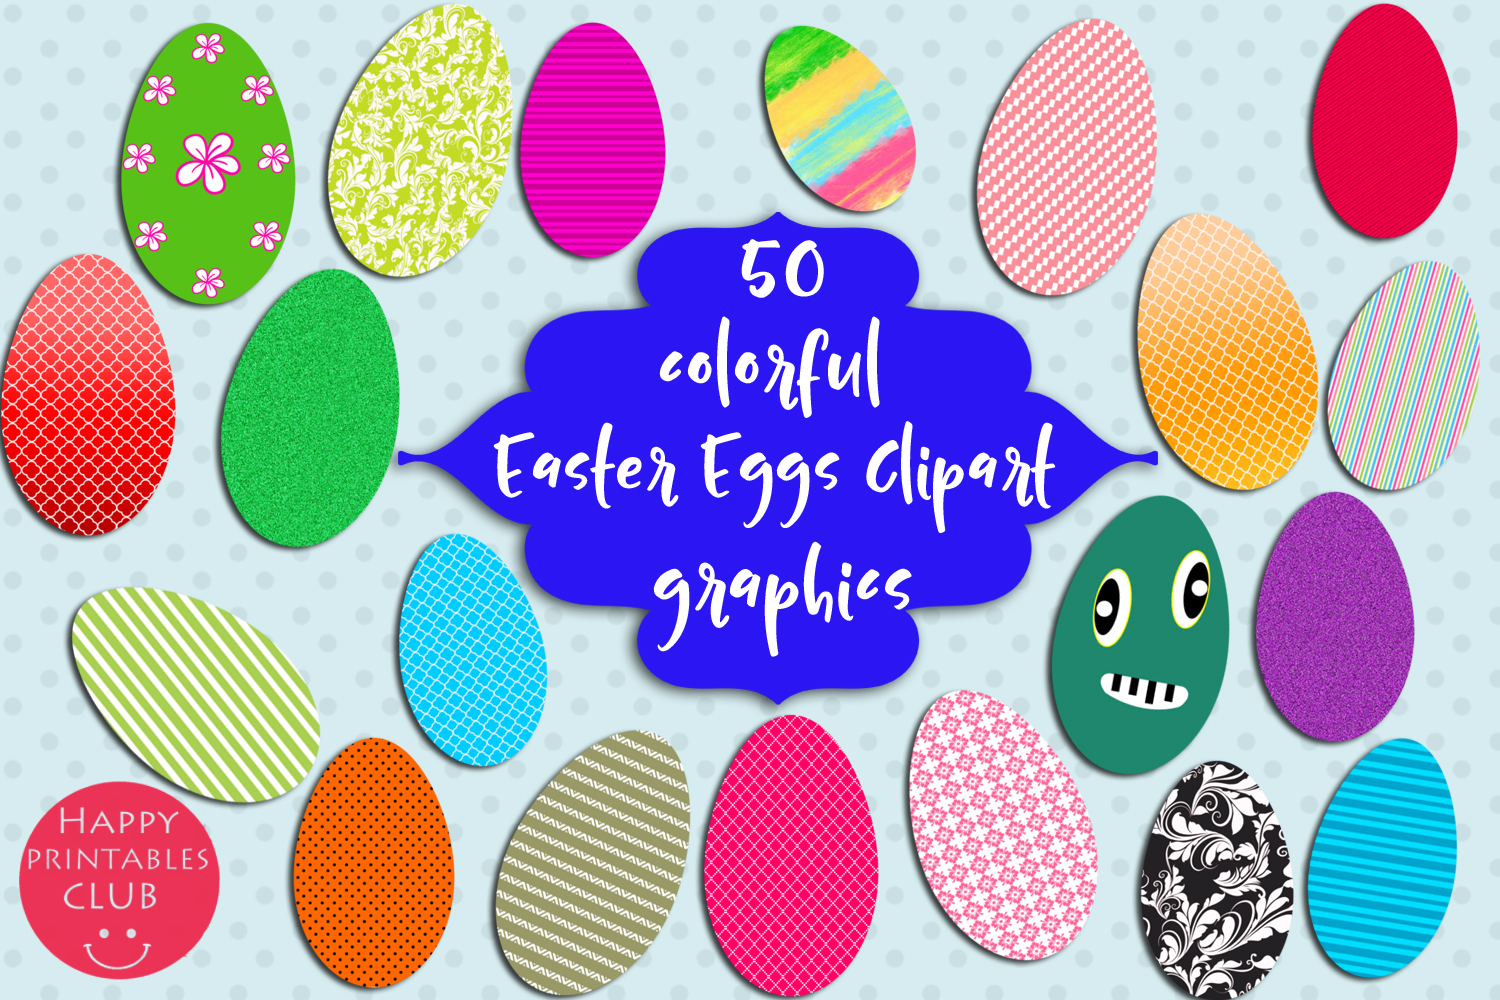 50 Colorful Easter Eggs Clipart-Cute Easter Eggs Clipart example image 2